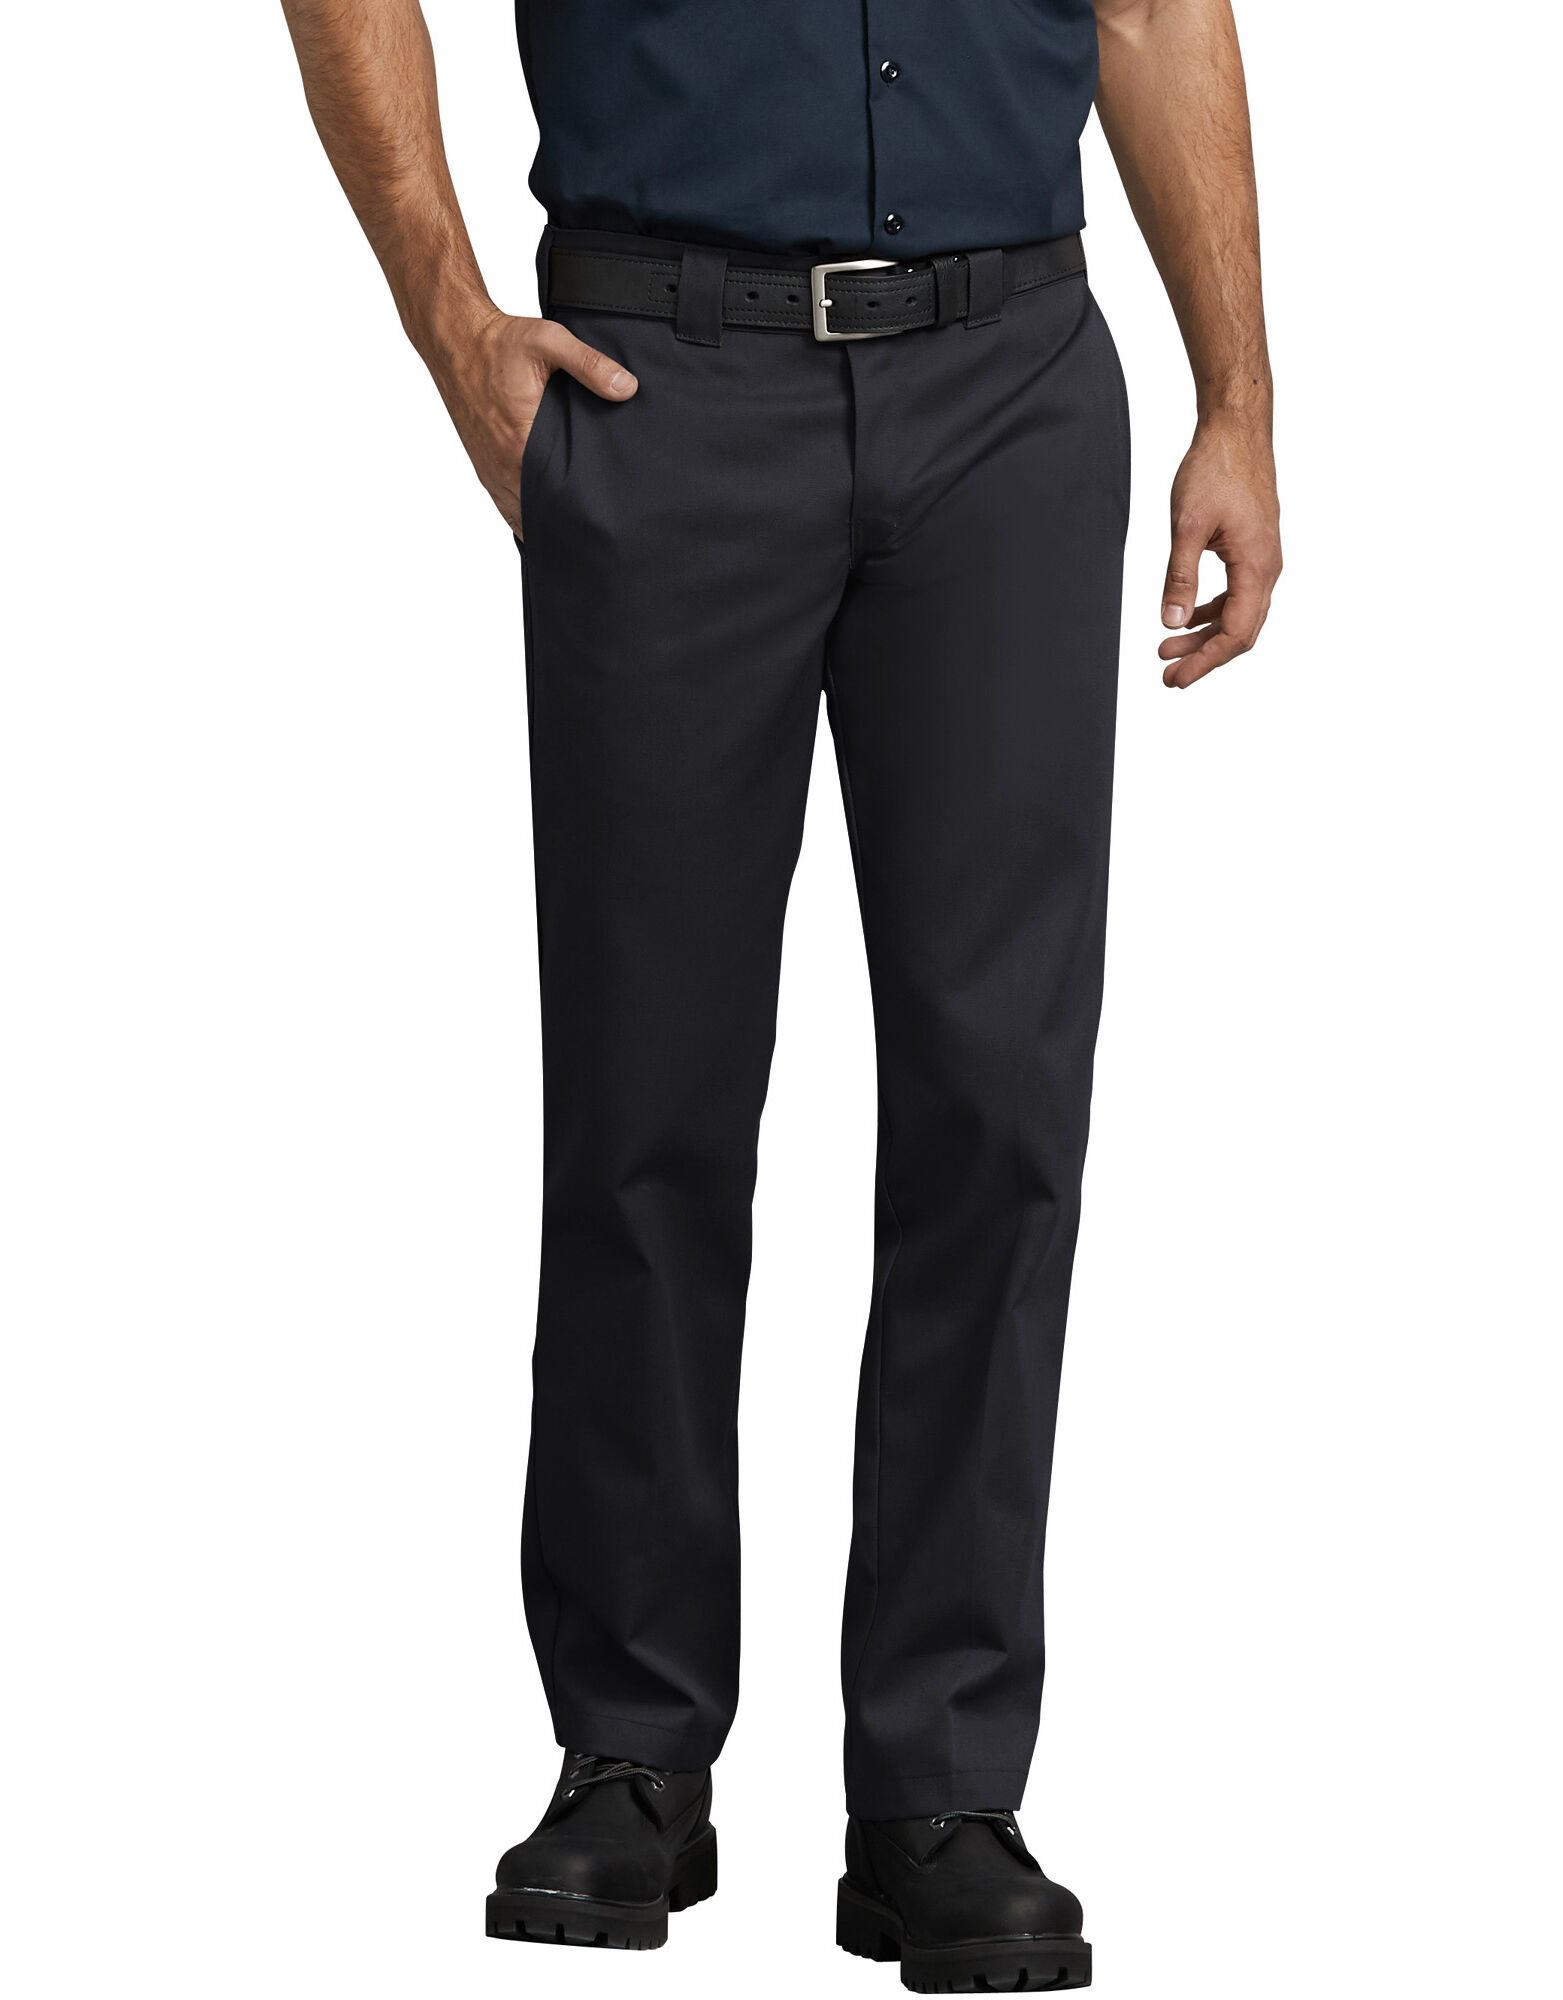 Pants - Typically slim fit pants will always have a flat-front design, are snug through the legs and taper slightly towards the bottom, ending in a small leg opening. The pants should be snug, about ½ inch of fabric when pinched between your fingers, but you should be able to move and sit with ease.